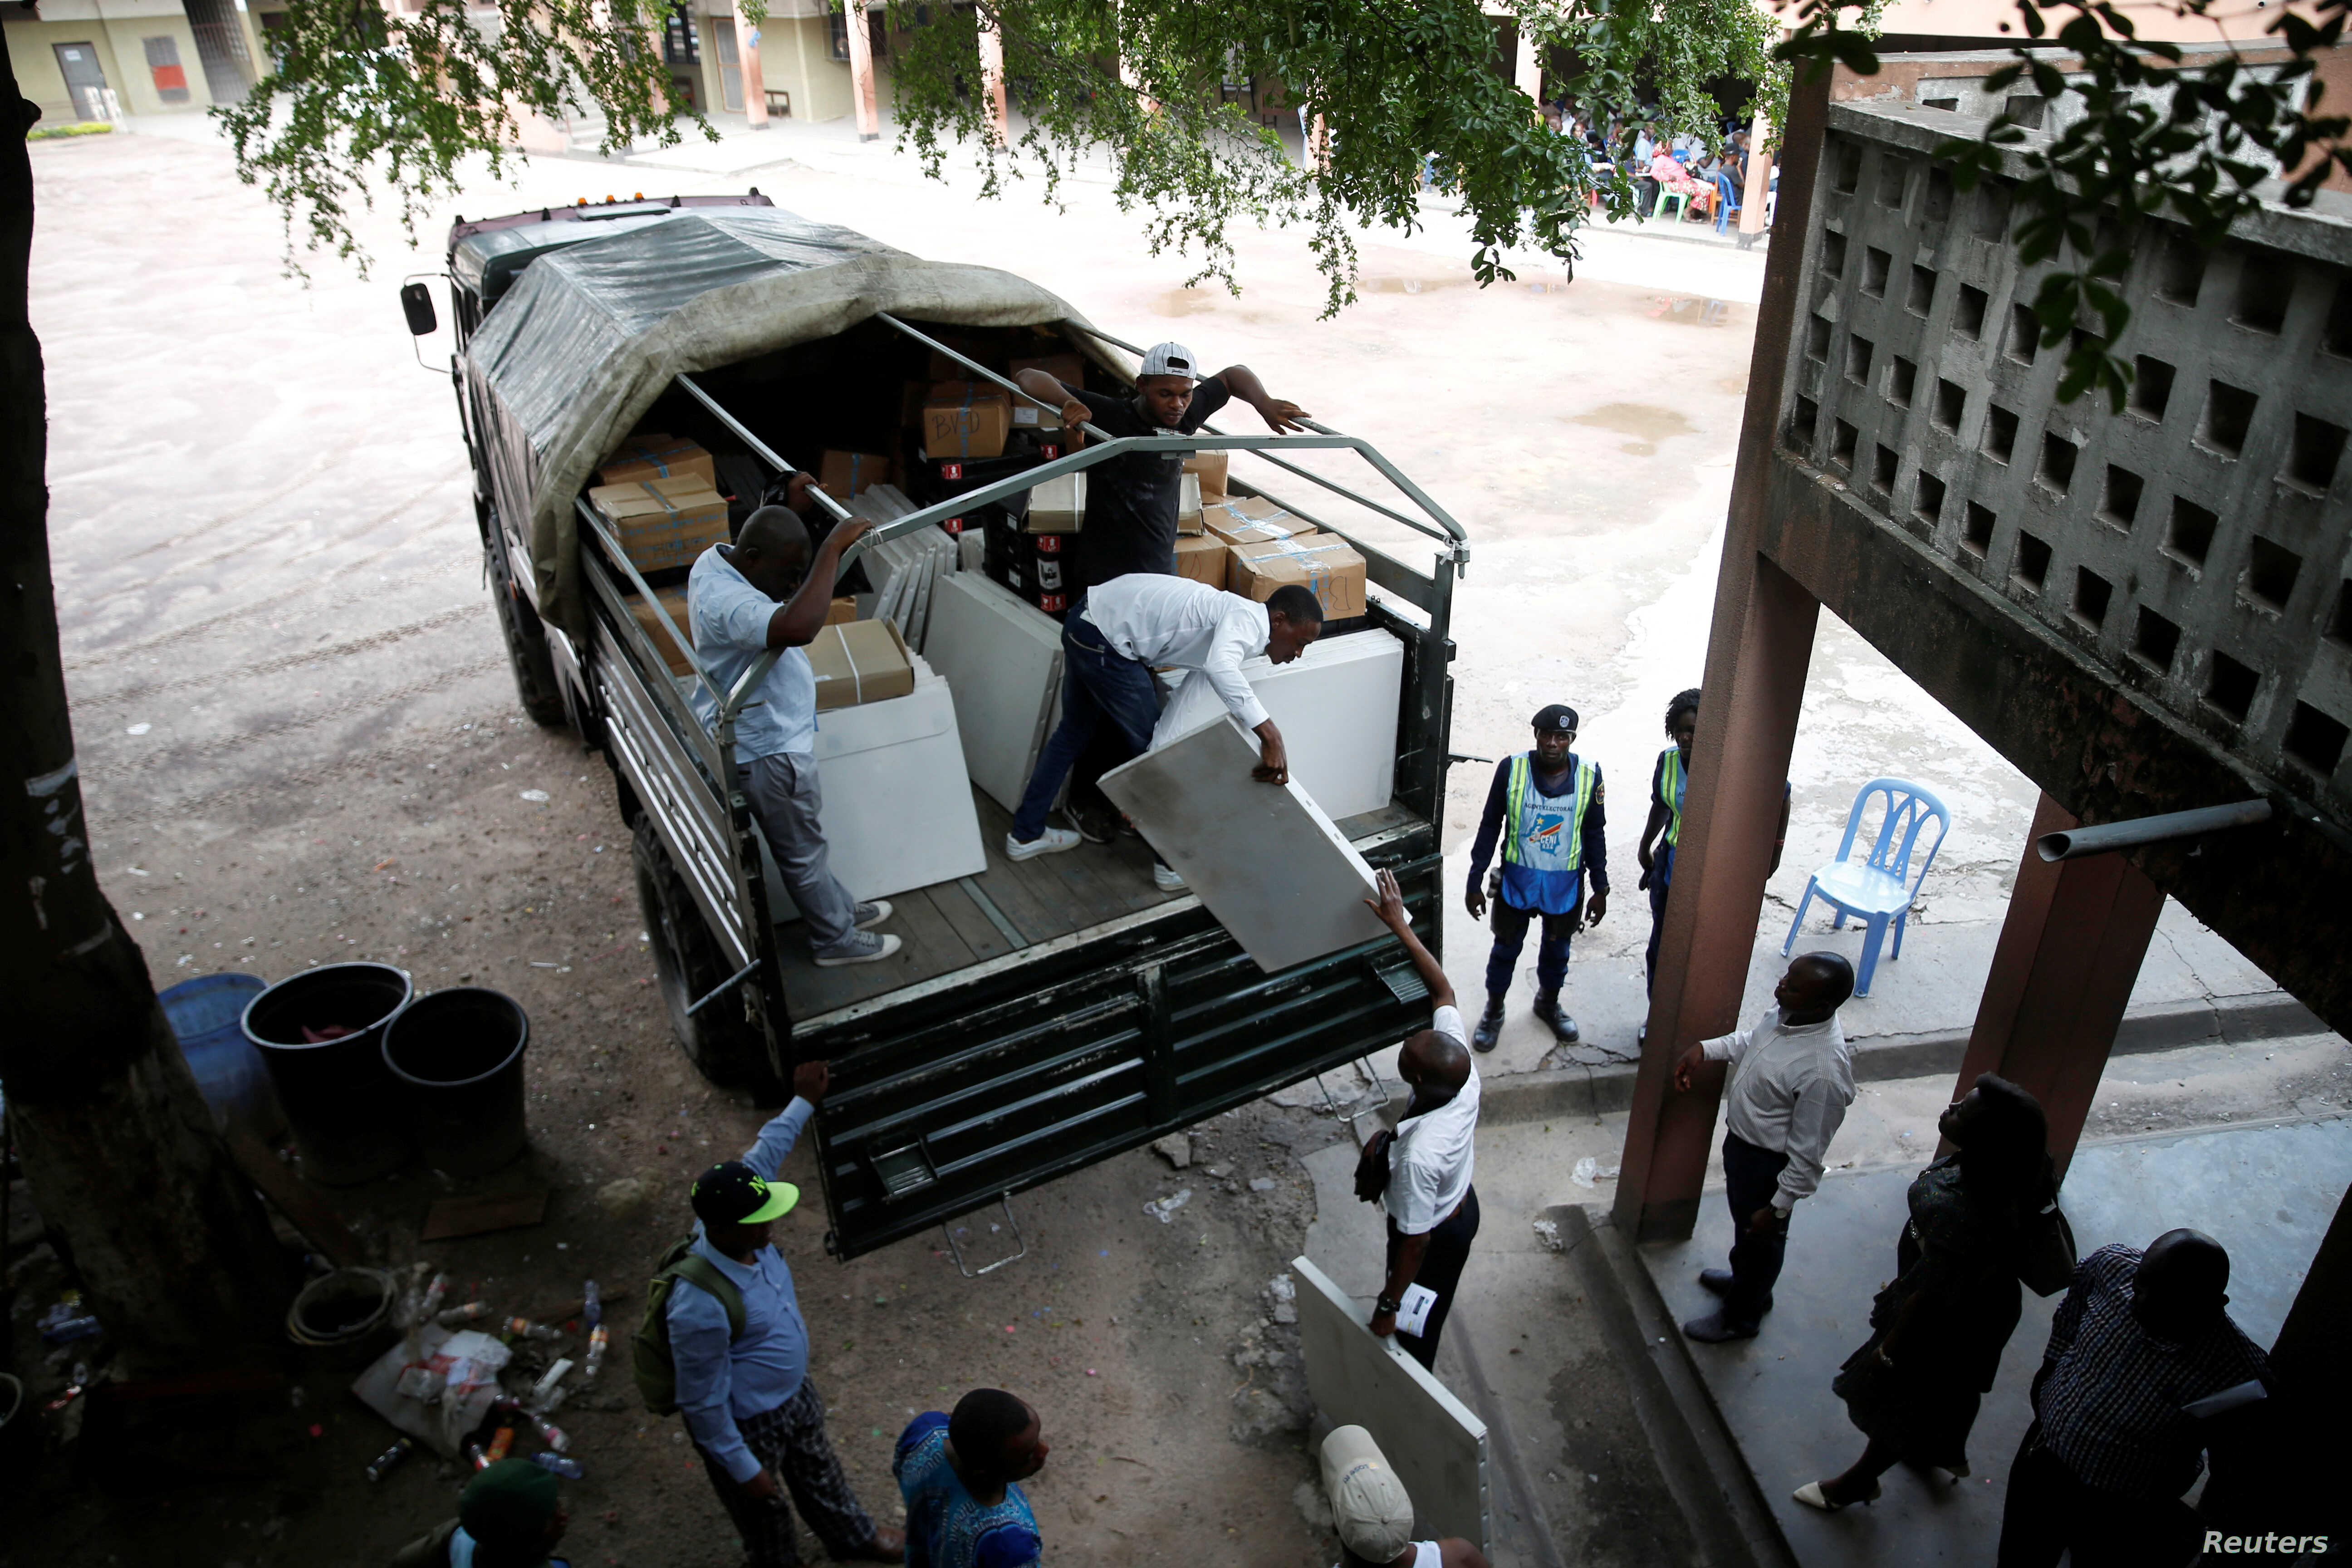 Employees of Congo's Independent National Electoral Commission (CENI) deliver voting machines and materials to a polling station in Kinshasa, Democratic Republic of Congo, Dec. 27, 2018.